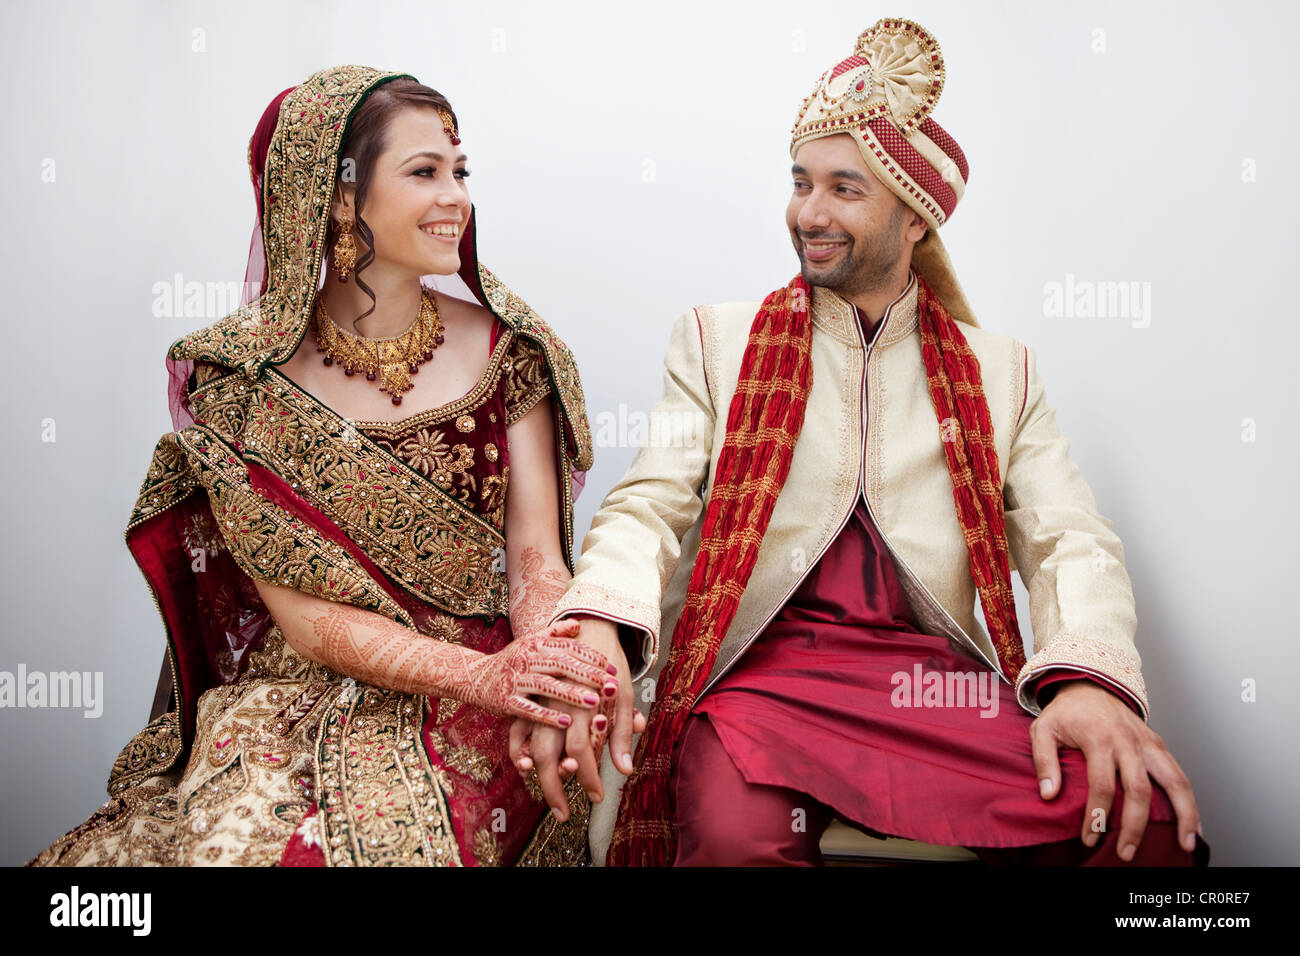 Indian Wedding Bride Groom High Resolution Stock Photography And Images Alamy